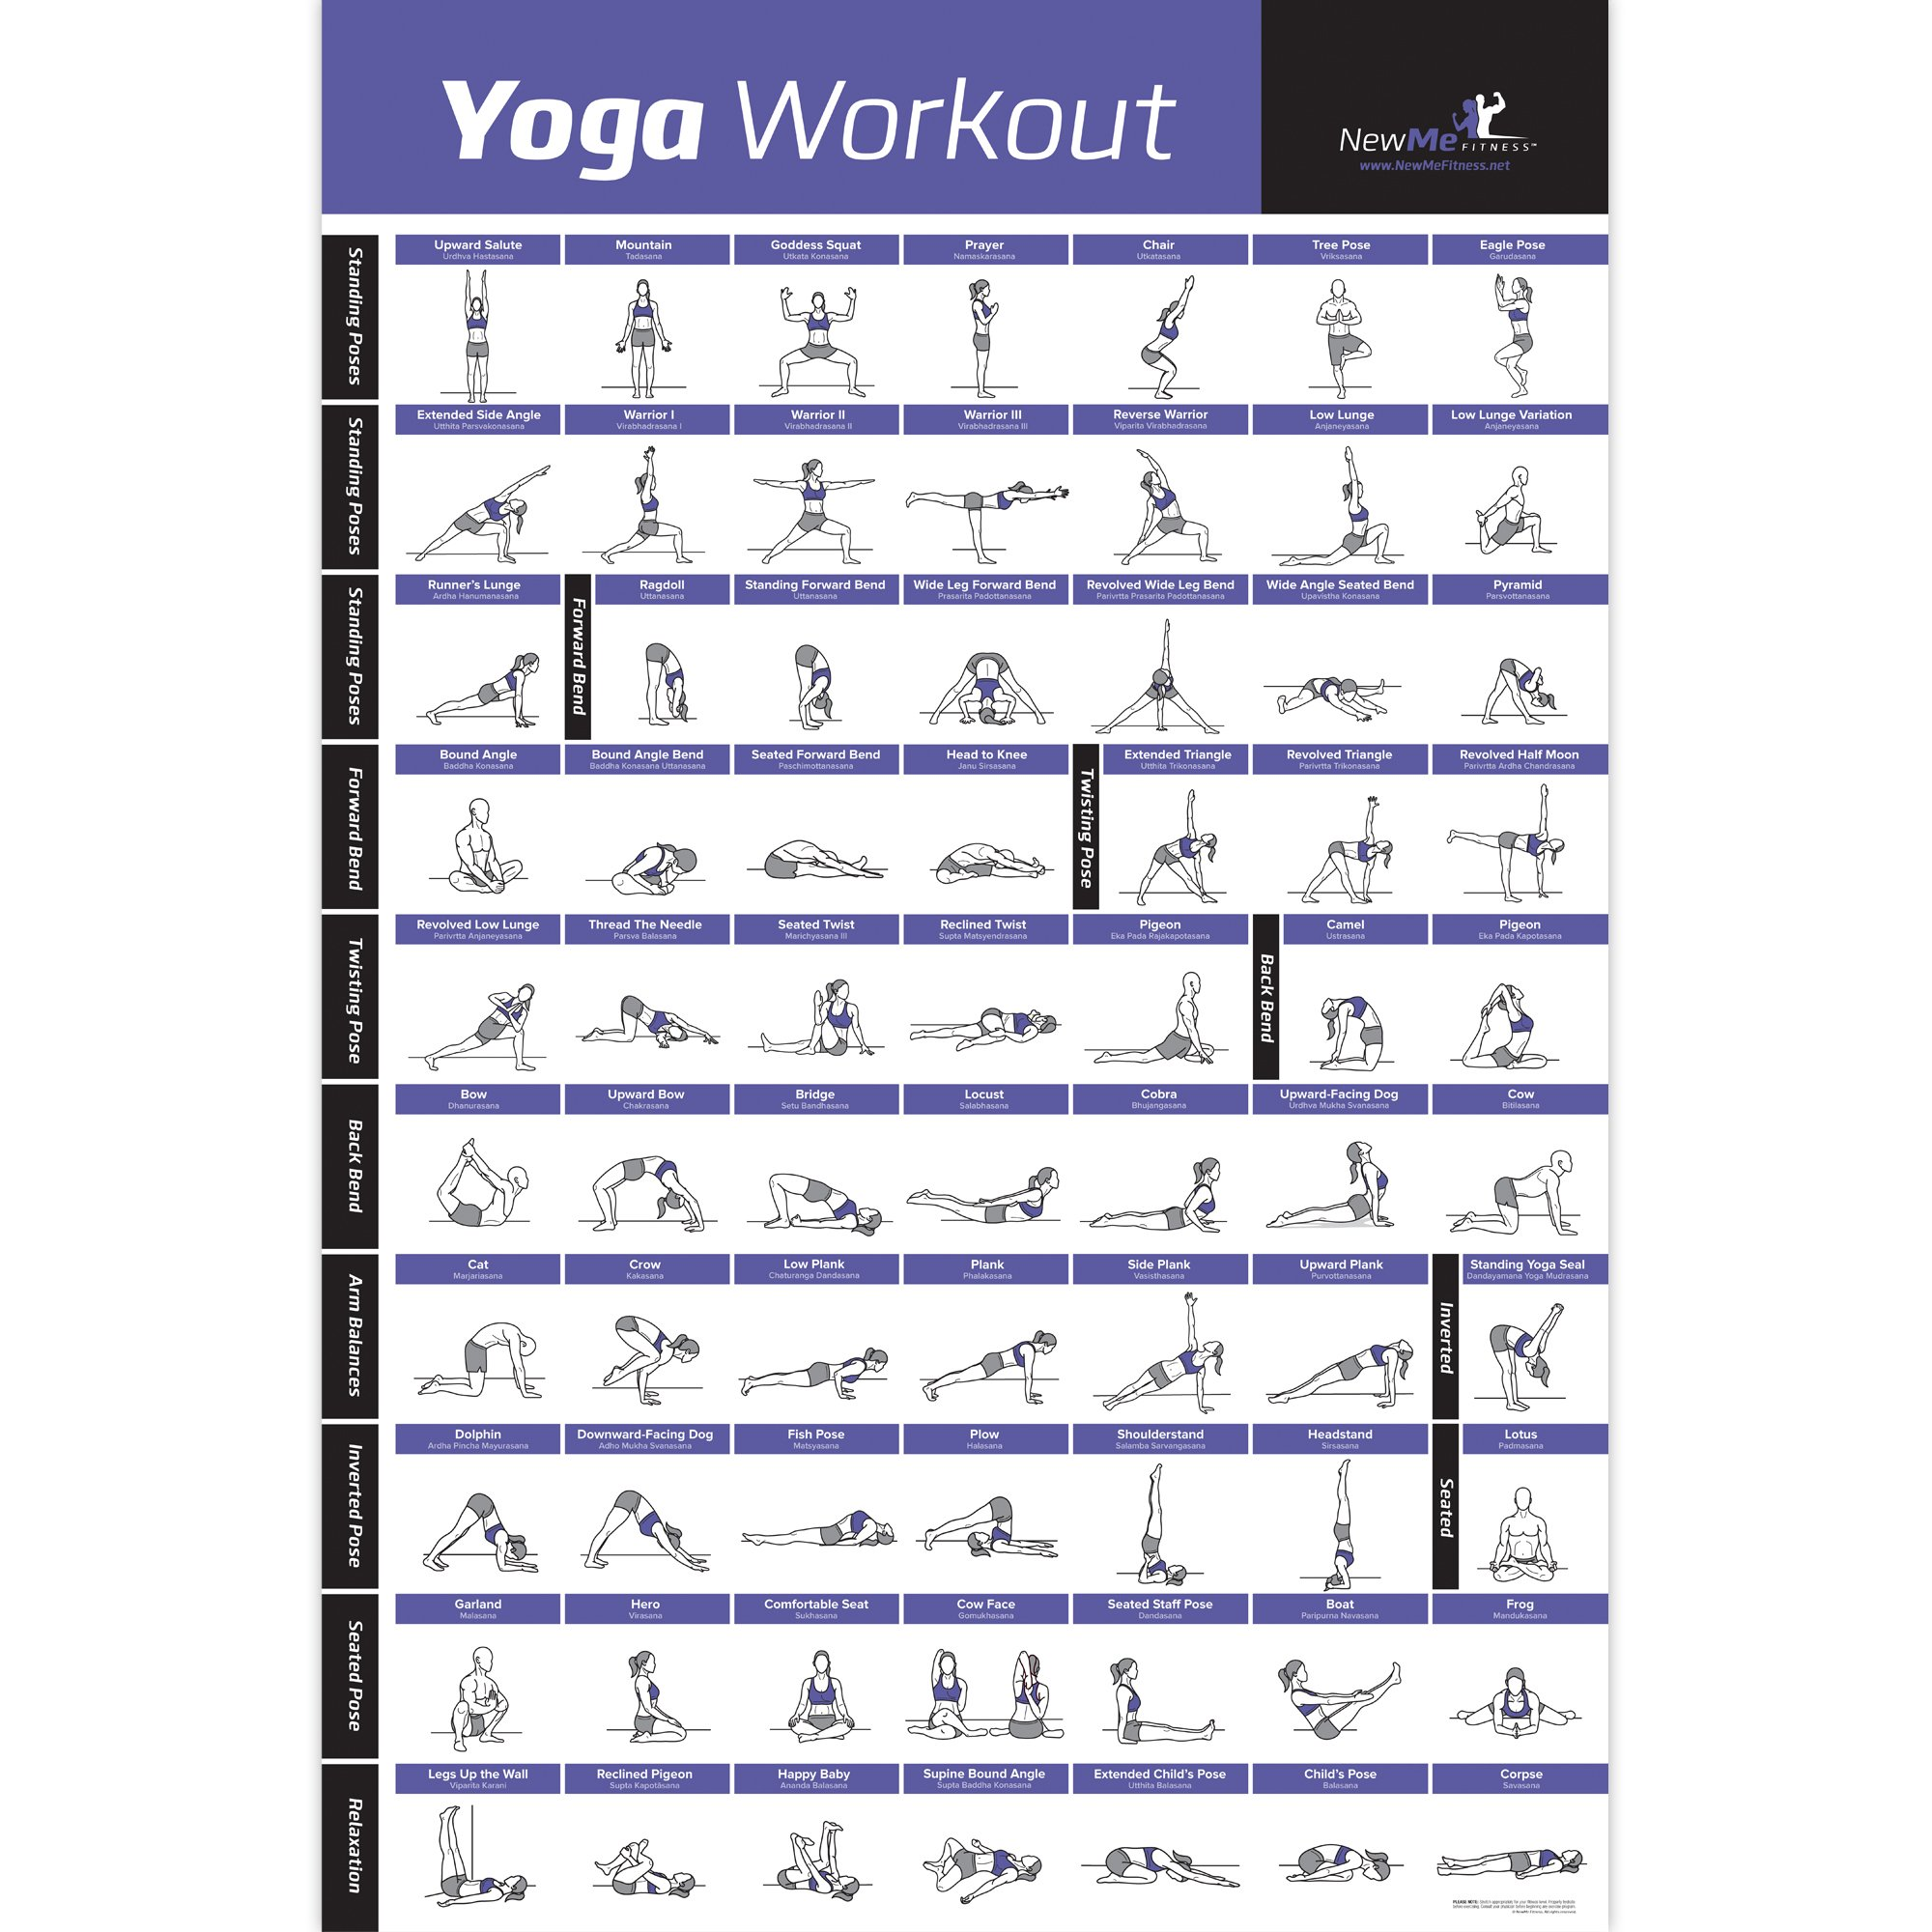 NewMe Fitness Yoga Pose Exercise Poster Laminated - Premium Instructional Beginner's Chart for Sequences & Flow - 70 Essential Poses - Sanskrit & English Names - Easy, View It & Do It! - 20''x30'' by NewMe Fitness